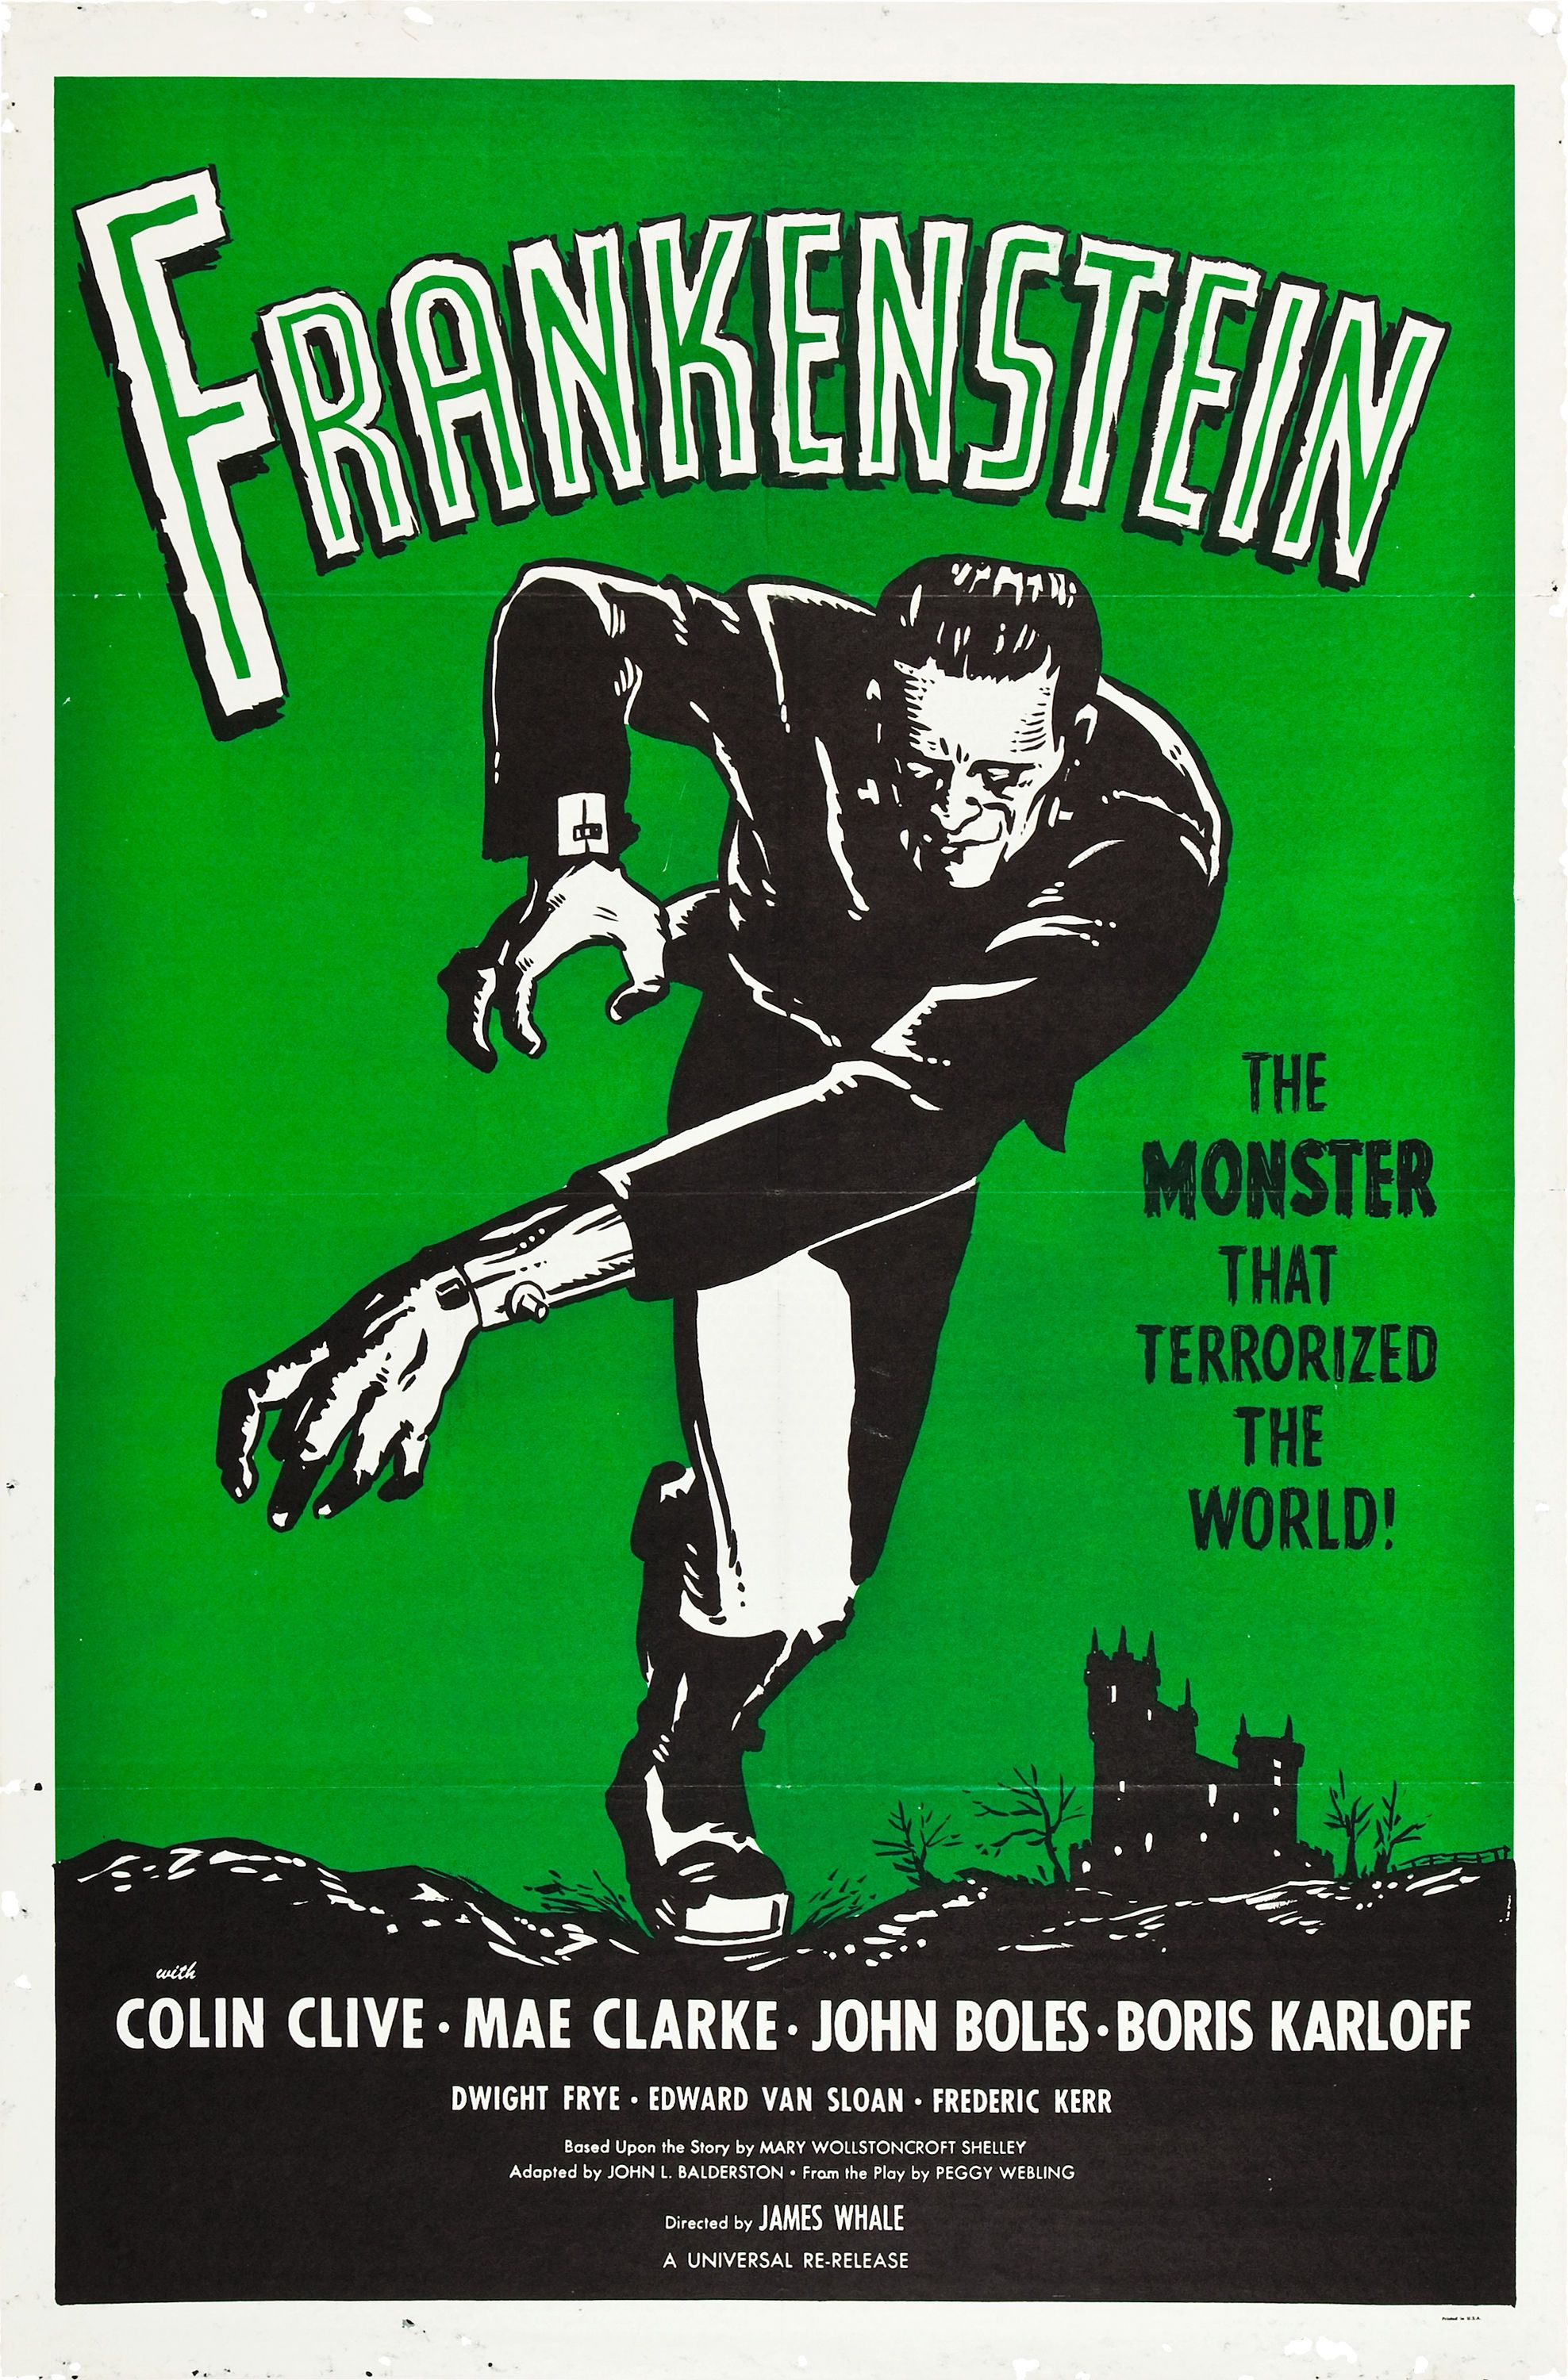 frankenstein vintage horror movie poster 1931 by 1960 universal re acquired the rights to distribute their greatest horror films from